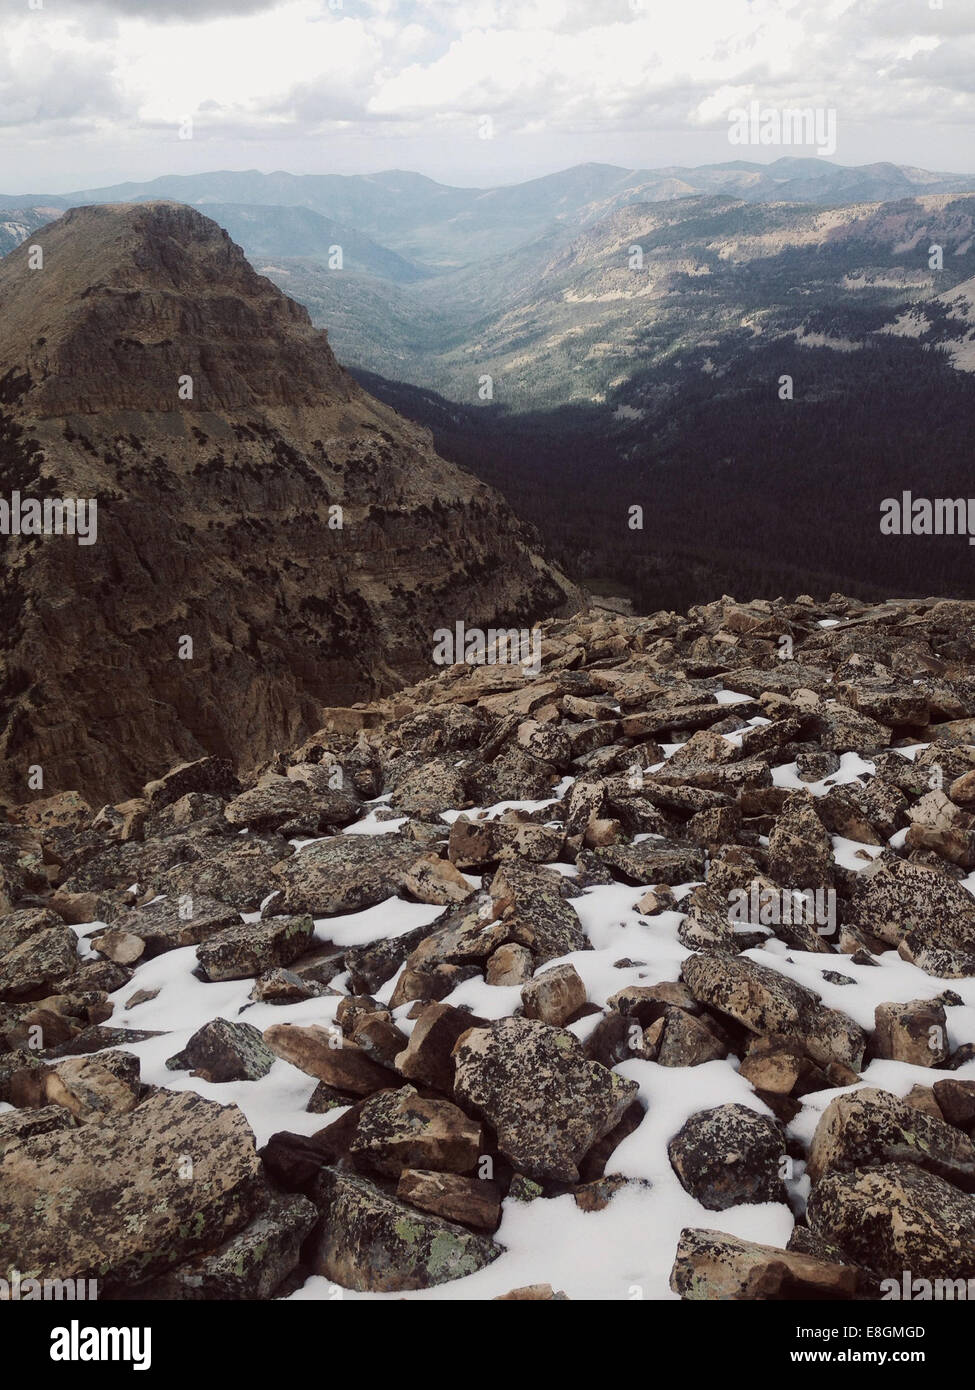 USA, Utah, View from atop of Bald Mountain - Stock Image